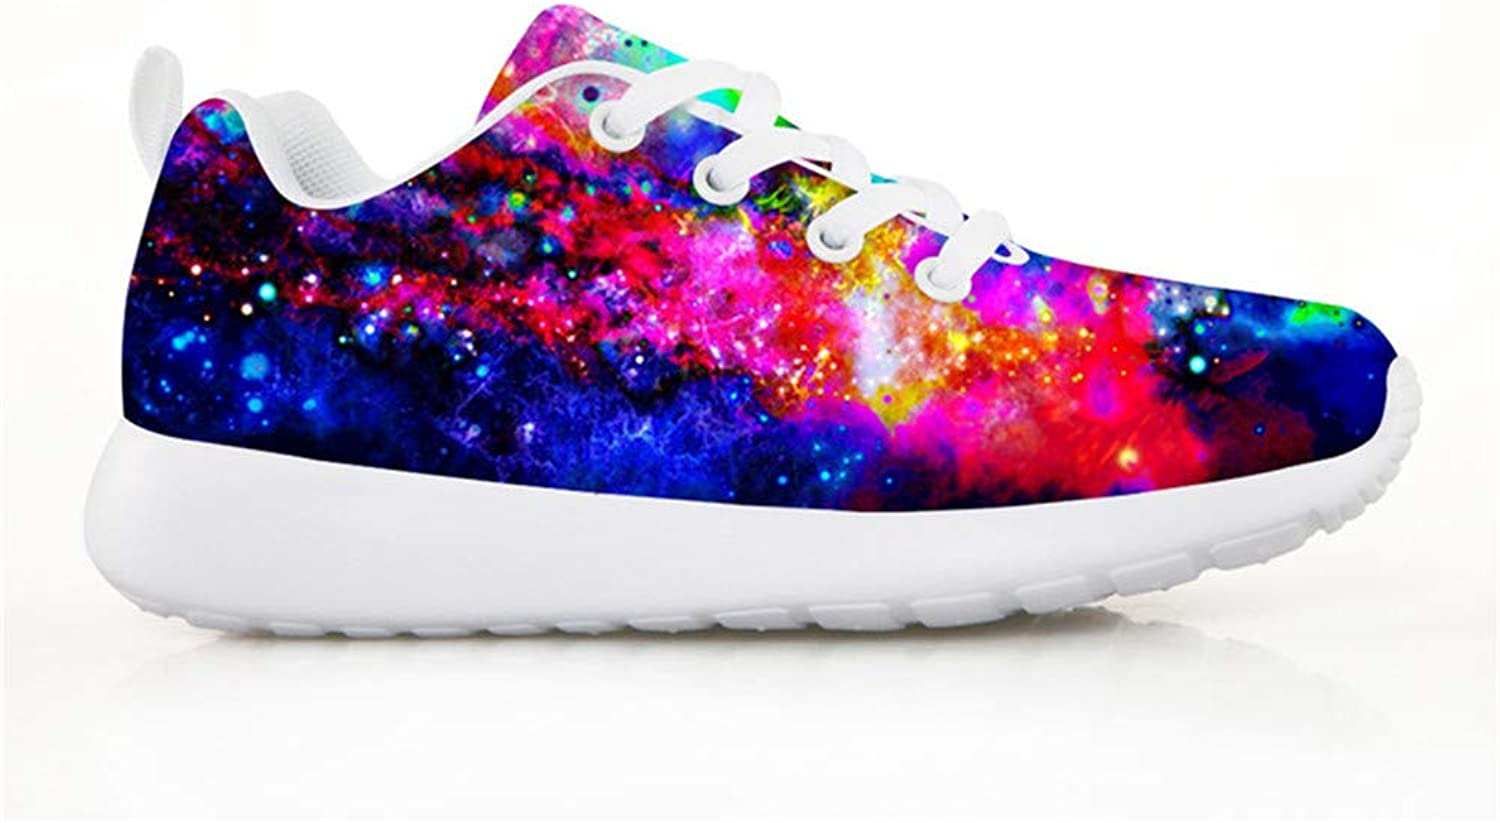 Chaqlin Fashion Sneakers for Kid's Boys Girls Sneakers Casual Running shoes Footwear Galaxy Pattern Multi colord